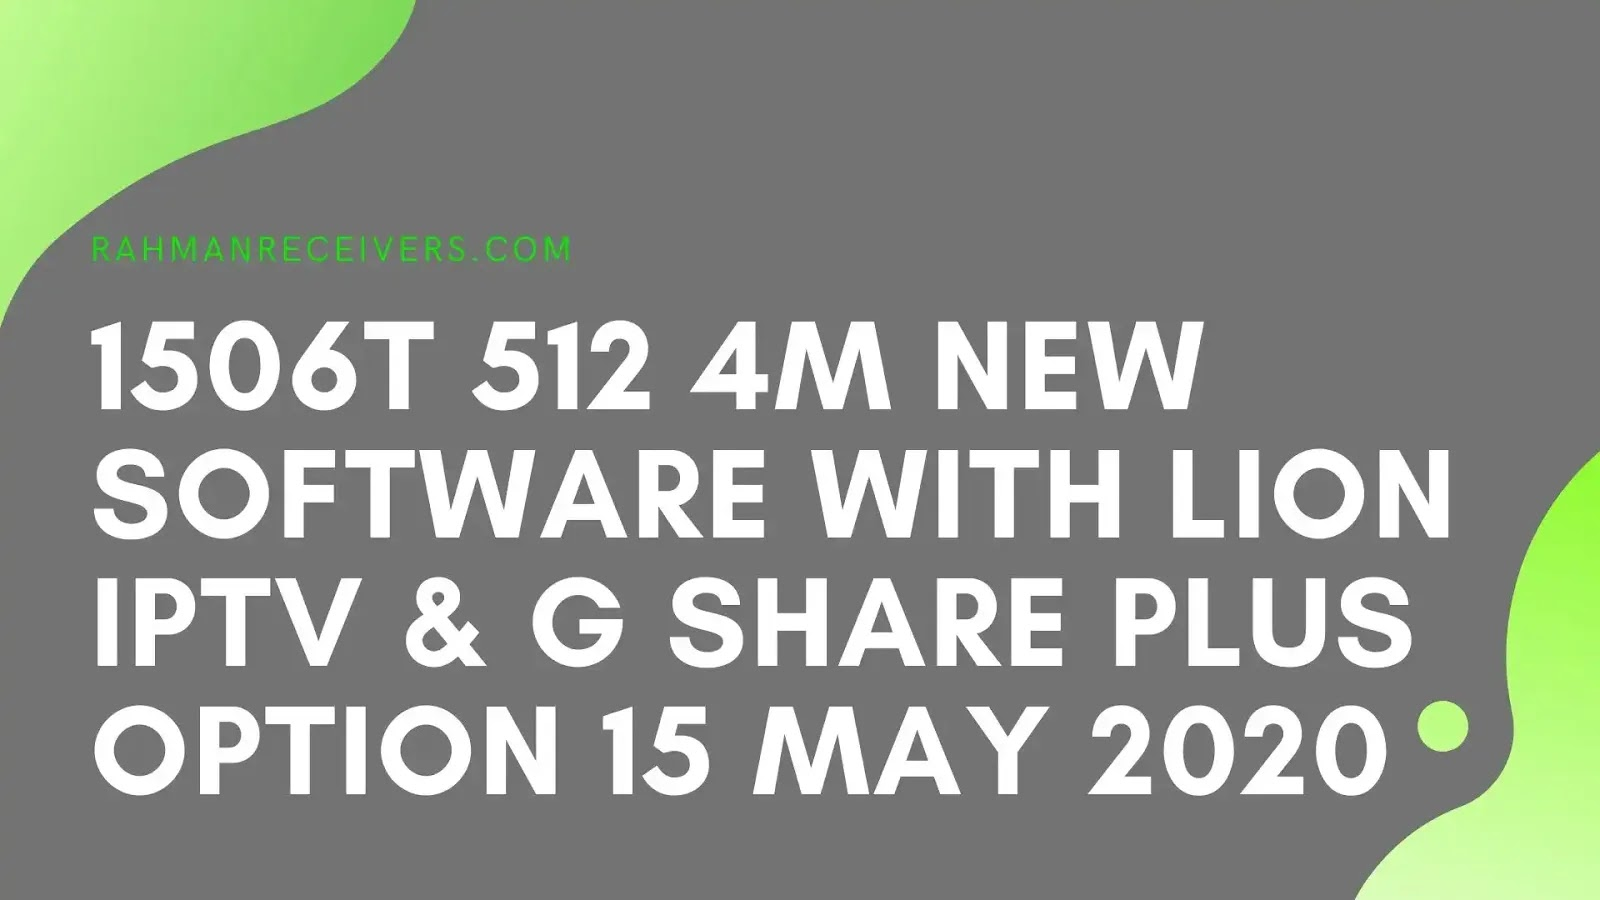 1506T 512 4M NEW SOFTWARE WITH LION IPTV & G SHARE PLUS OPTION 15 MAY 2020